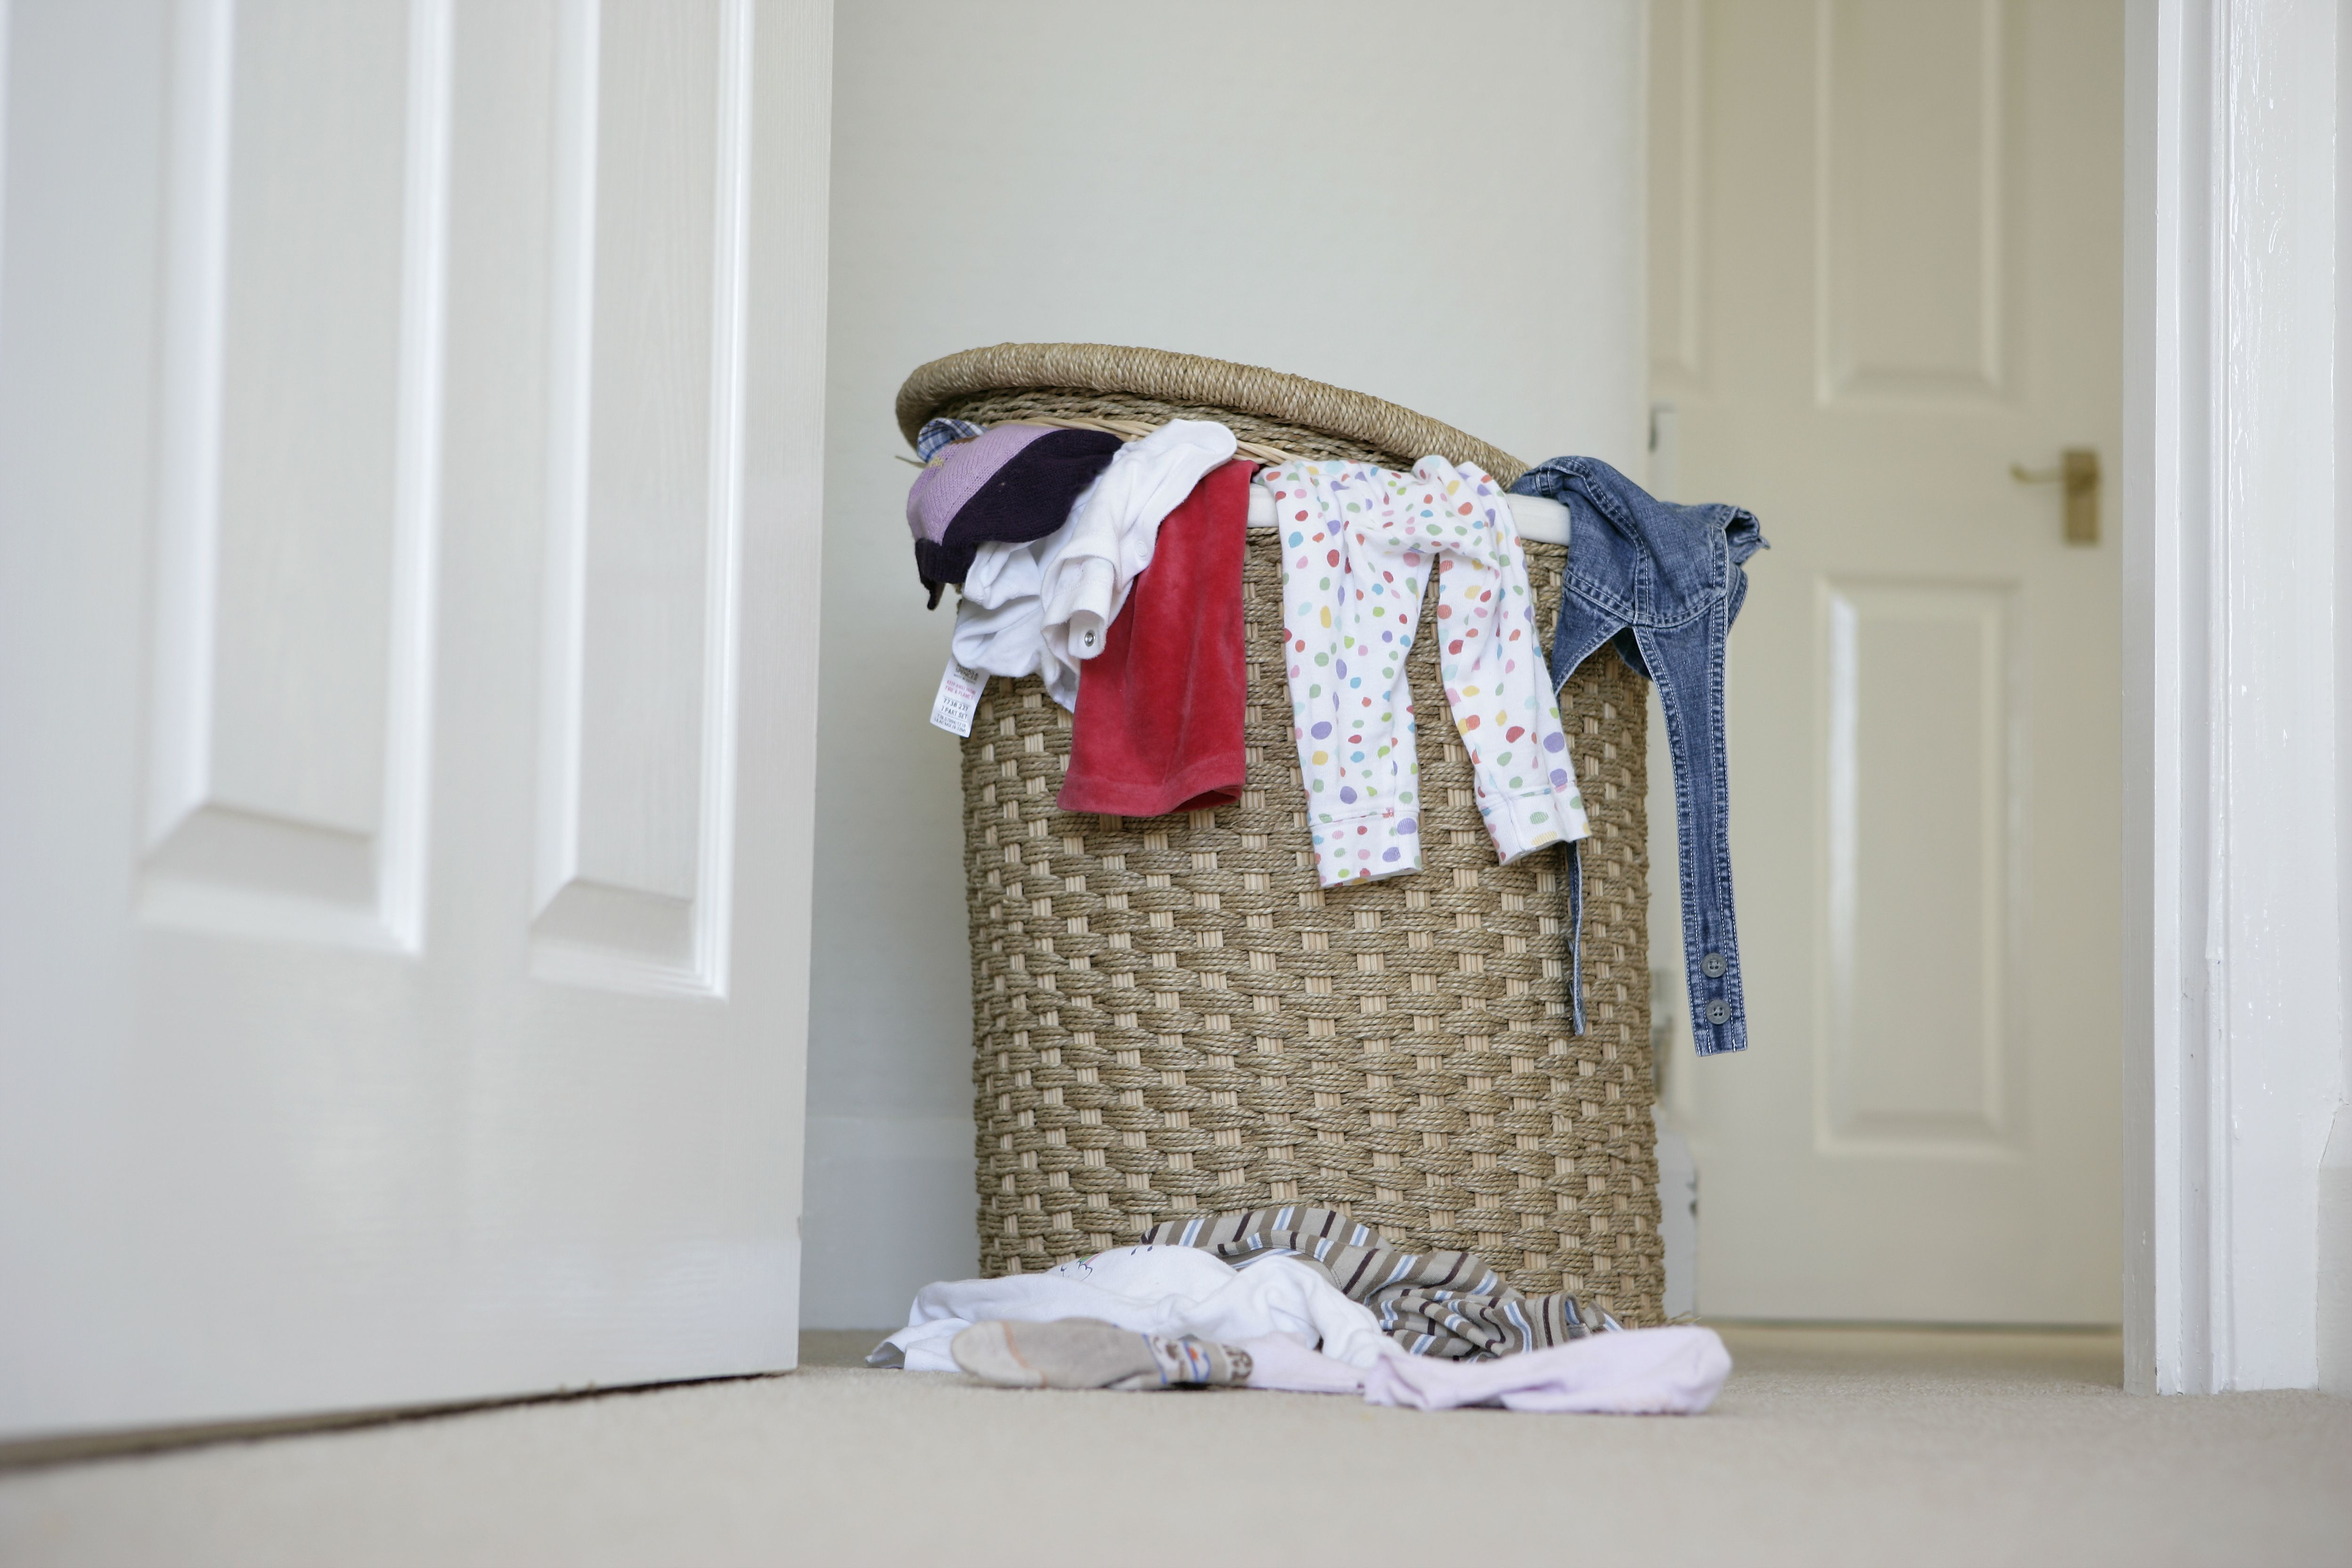 How to remove laundry hamper odor - How to get exterior paint out of clothes ...